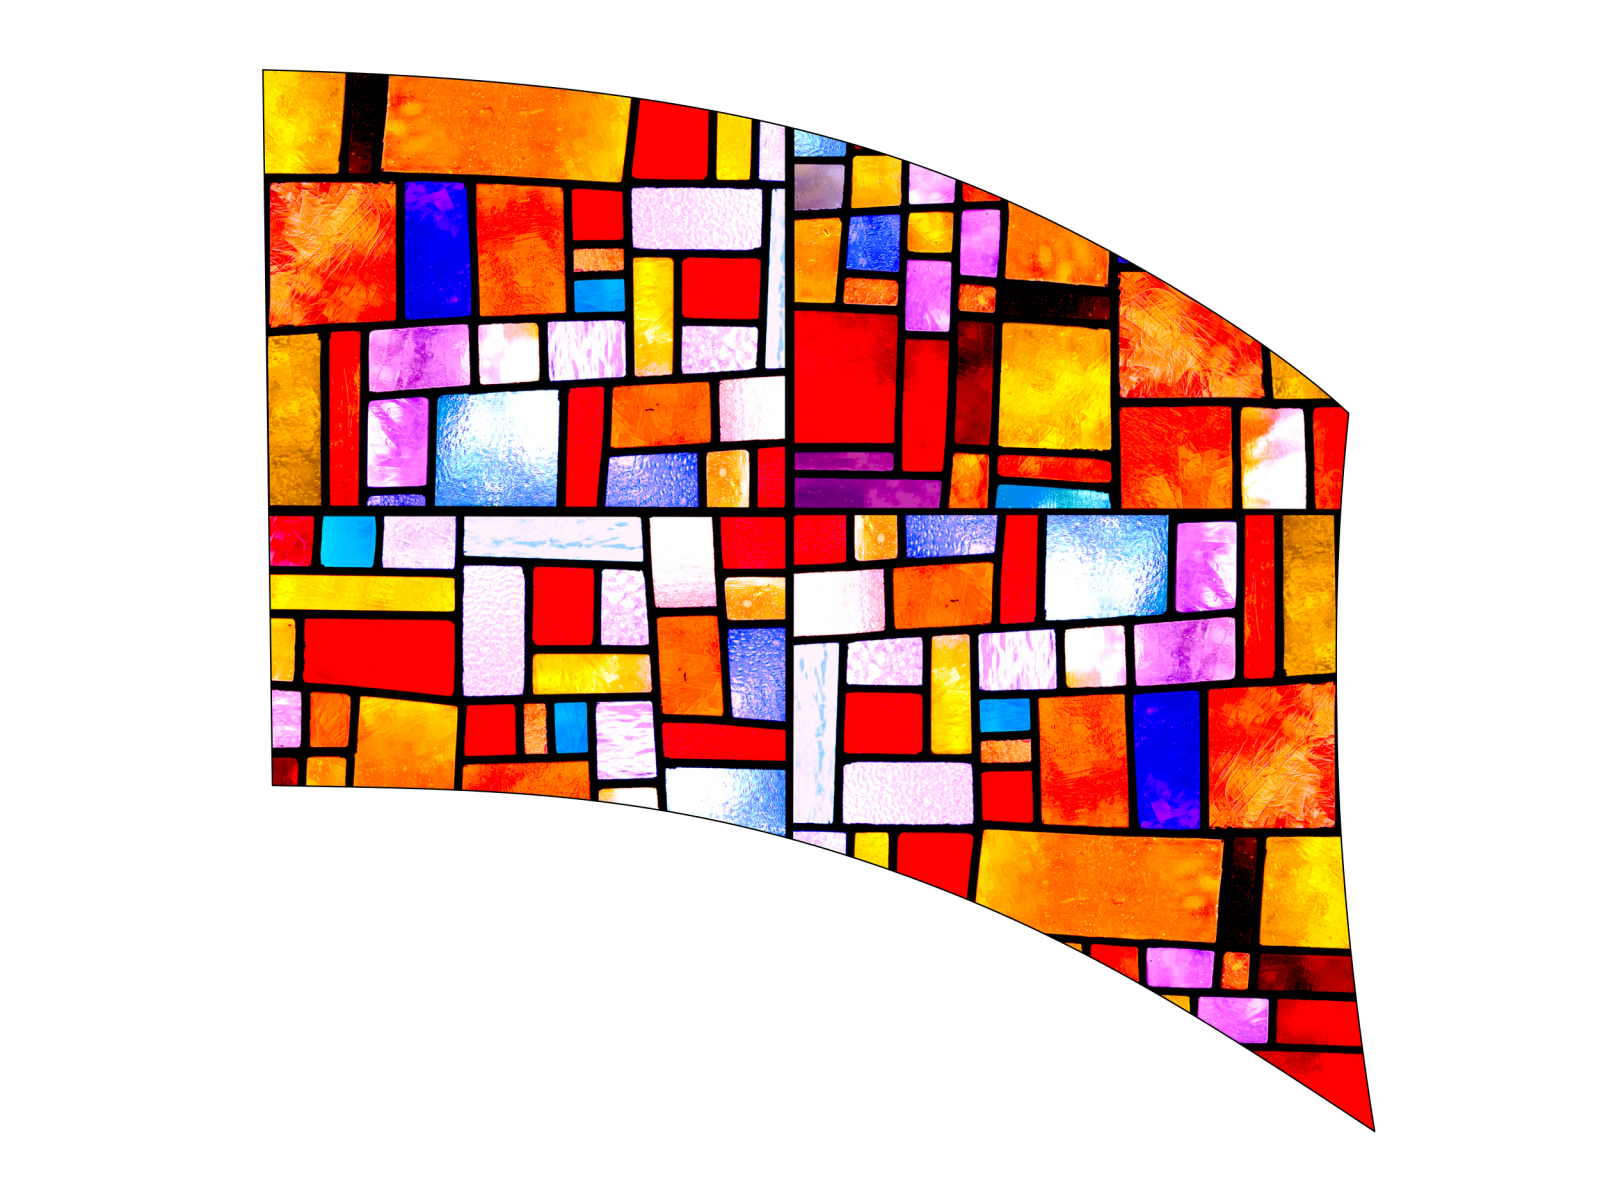 020204s - 36x54 Standard Stained Glass 2